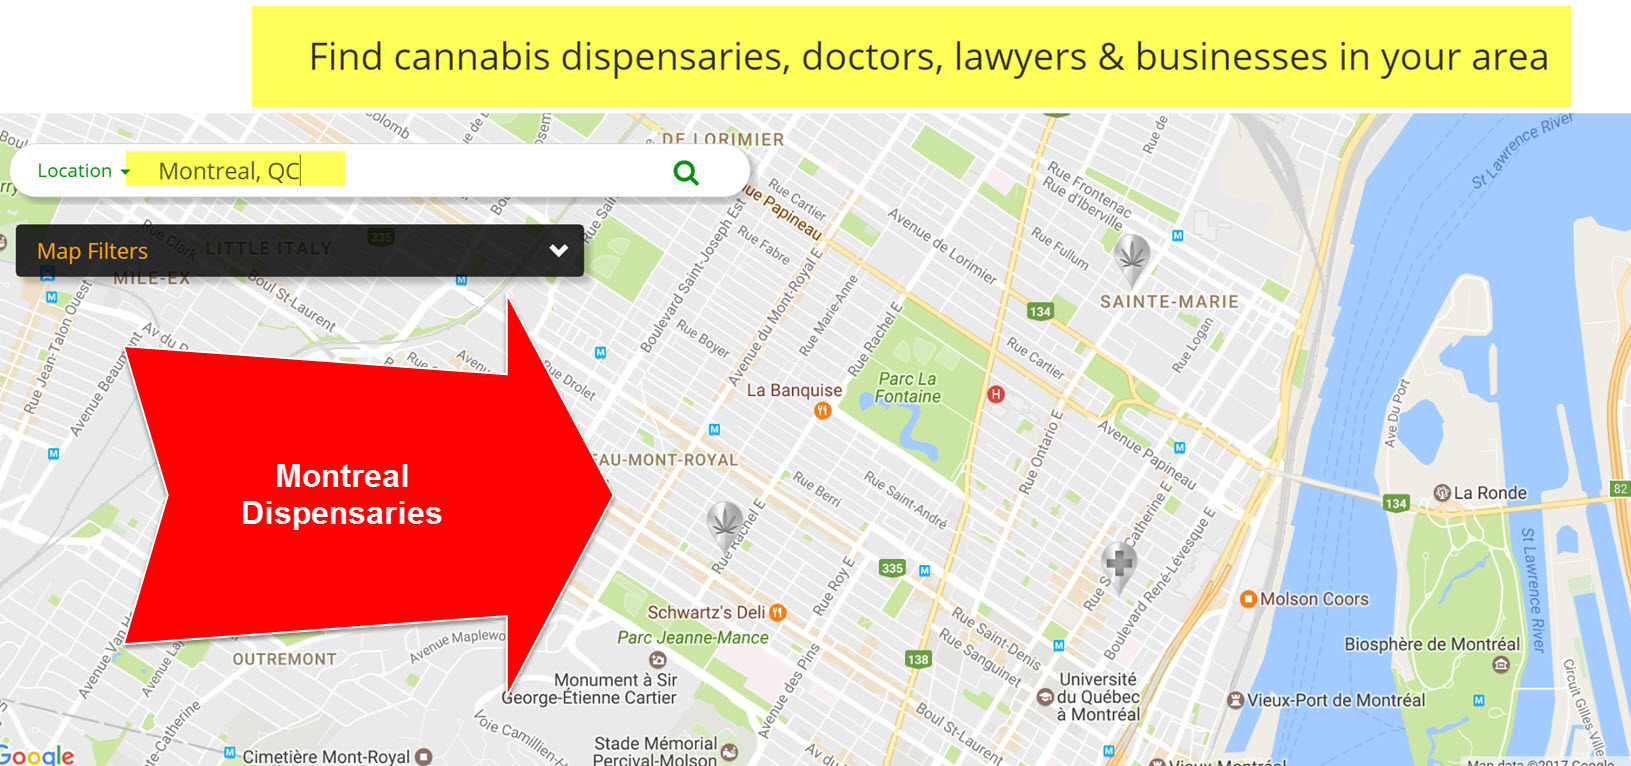 Montreal Dispensaries Have A Flavorful Amount Of Cannabis